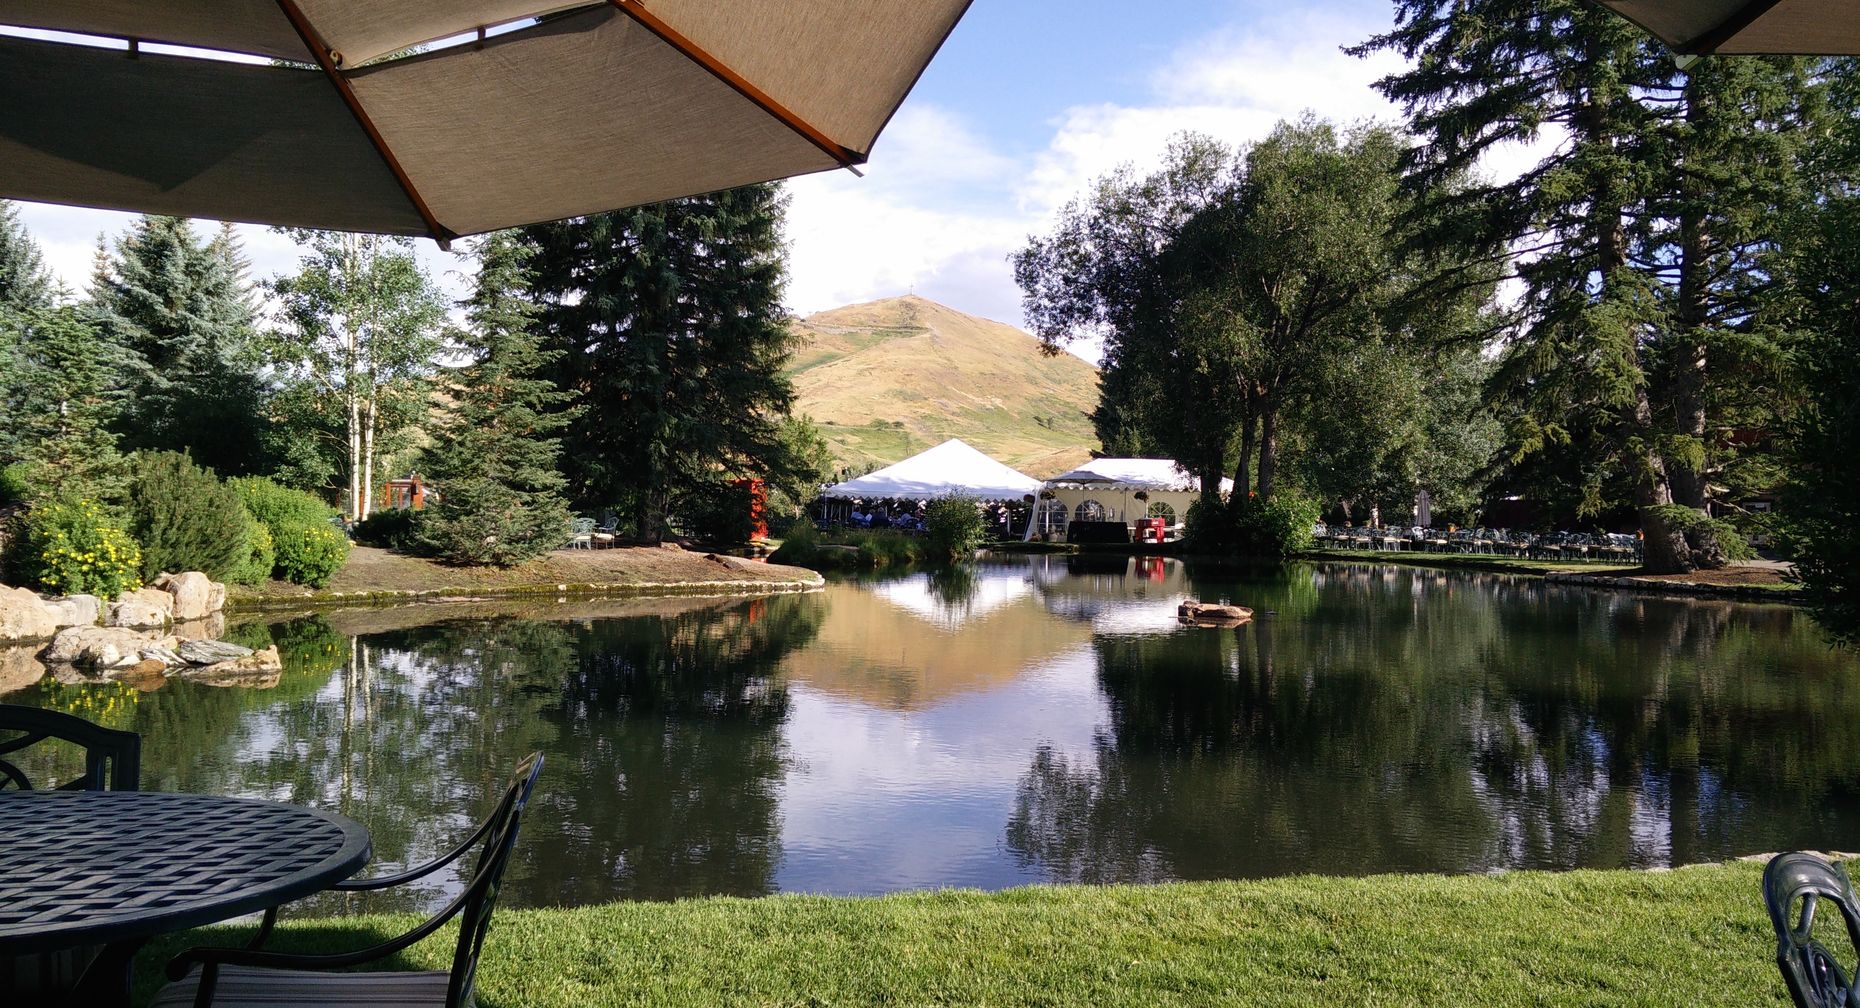 The duck pond where Allen & Co attendees relax and meet. Photo by Amir Efrati.